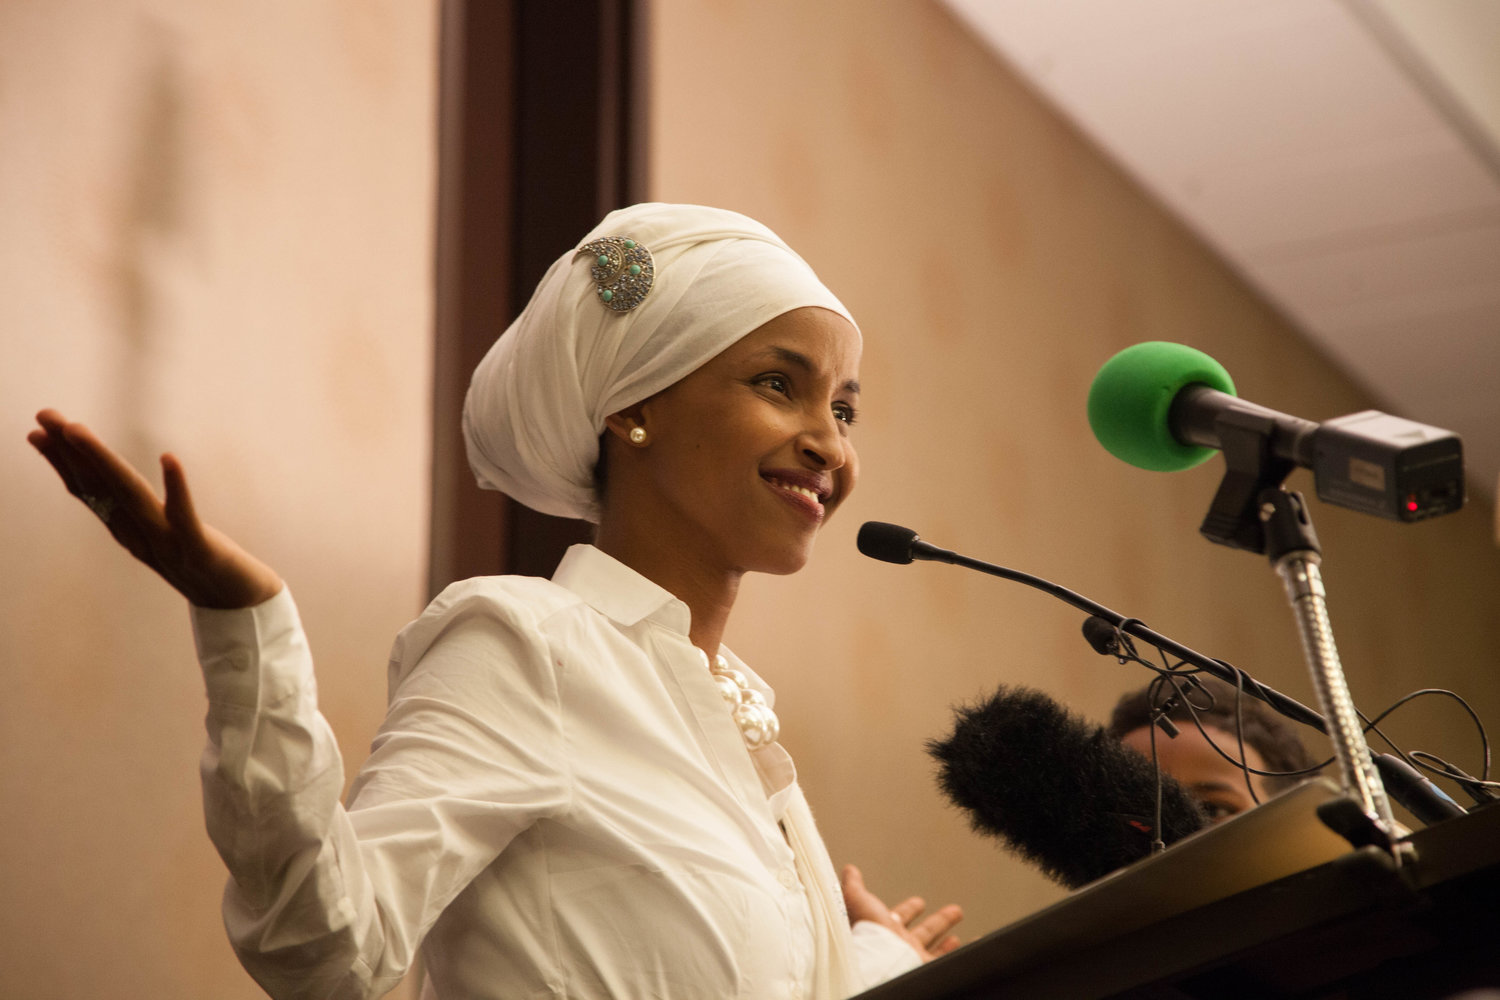 Minnesota state Rep Ilhan Omar won the Democratic primary on Tuesday for the states 5th Congressional District putting her on a path to make history